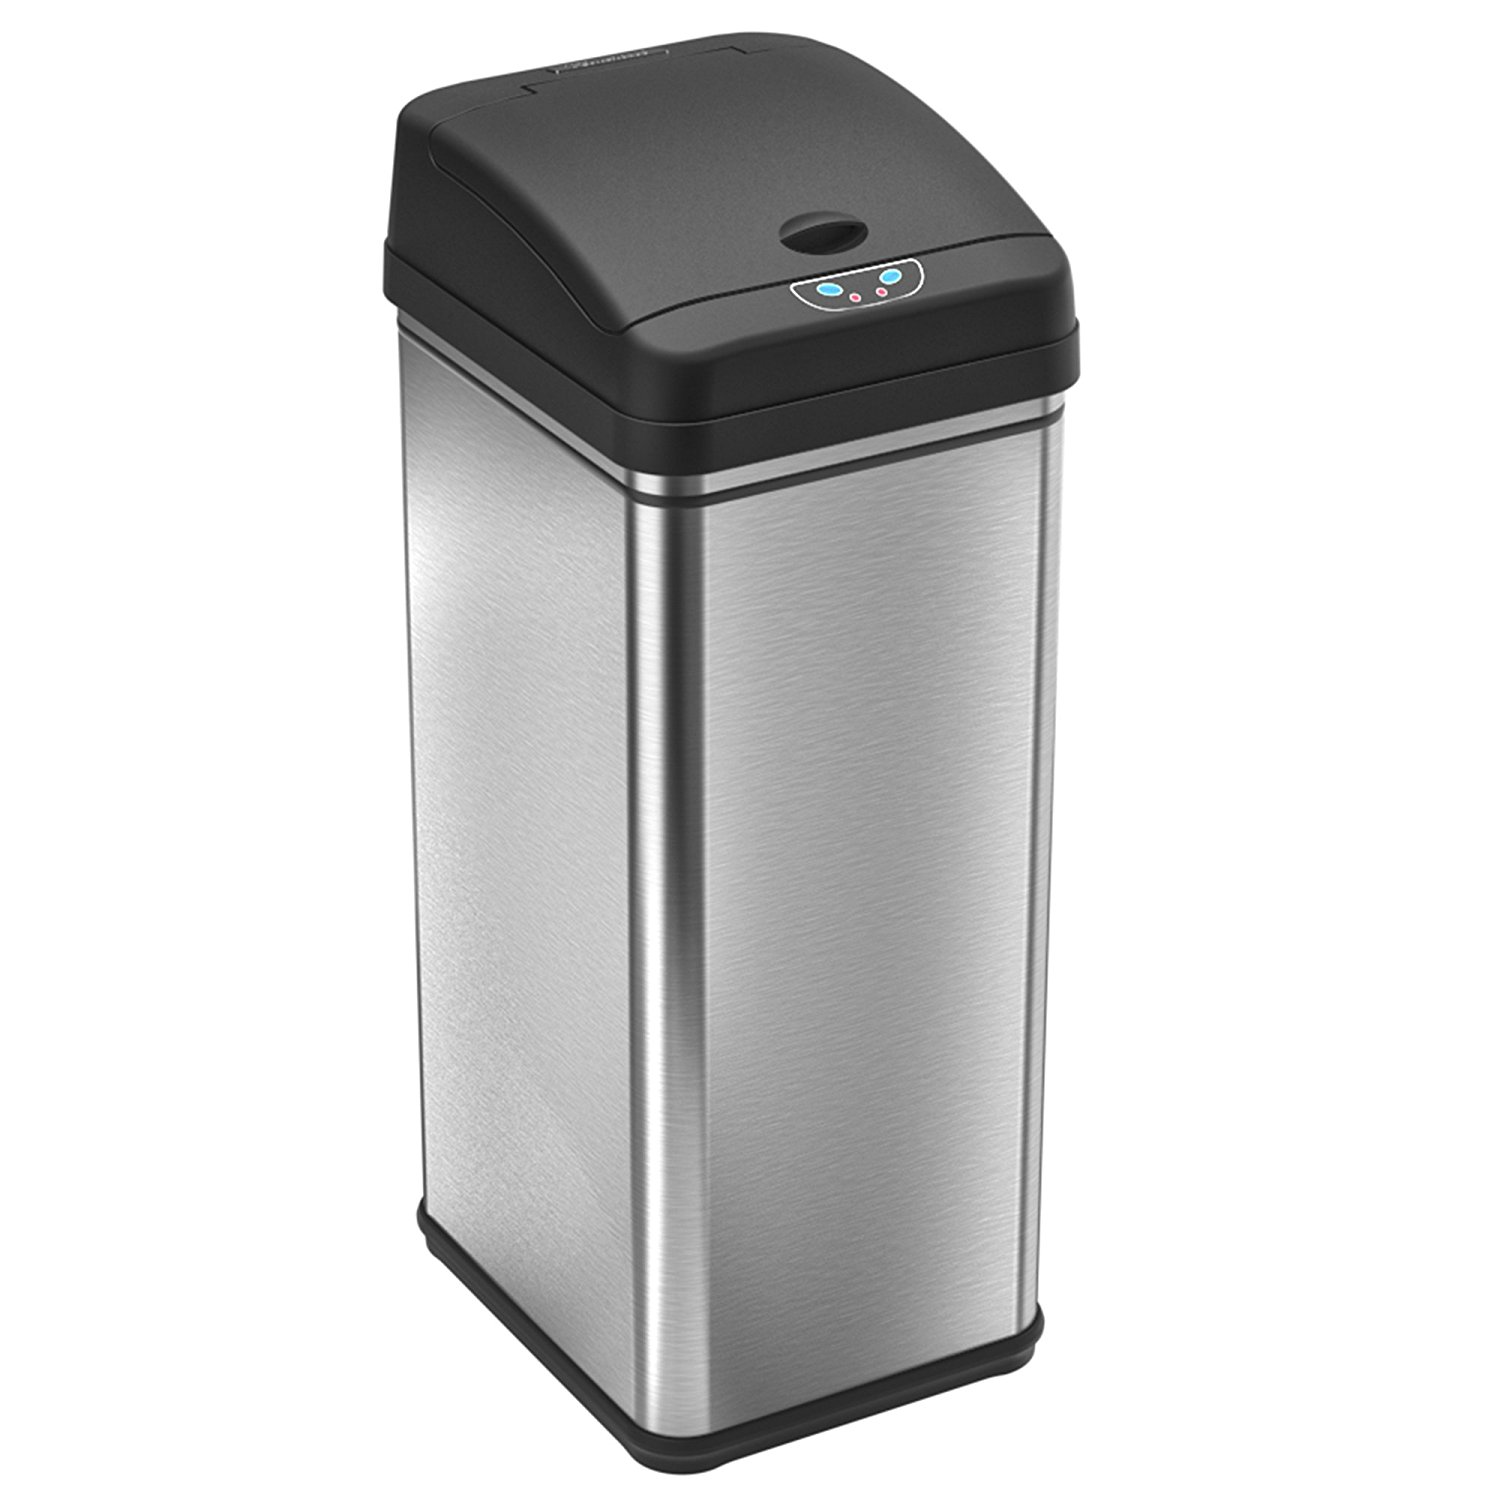 Superbe ITouchless 13 Gallon Touchless Sensor Kitchen Trash Can, Stainless Steel,  Odor Filter System   Walmart.com